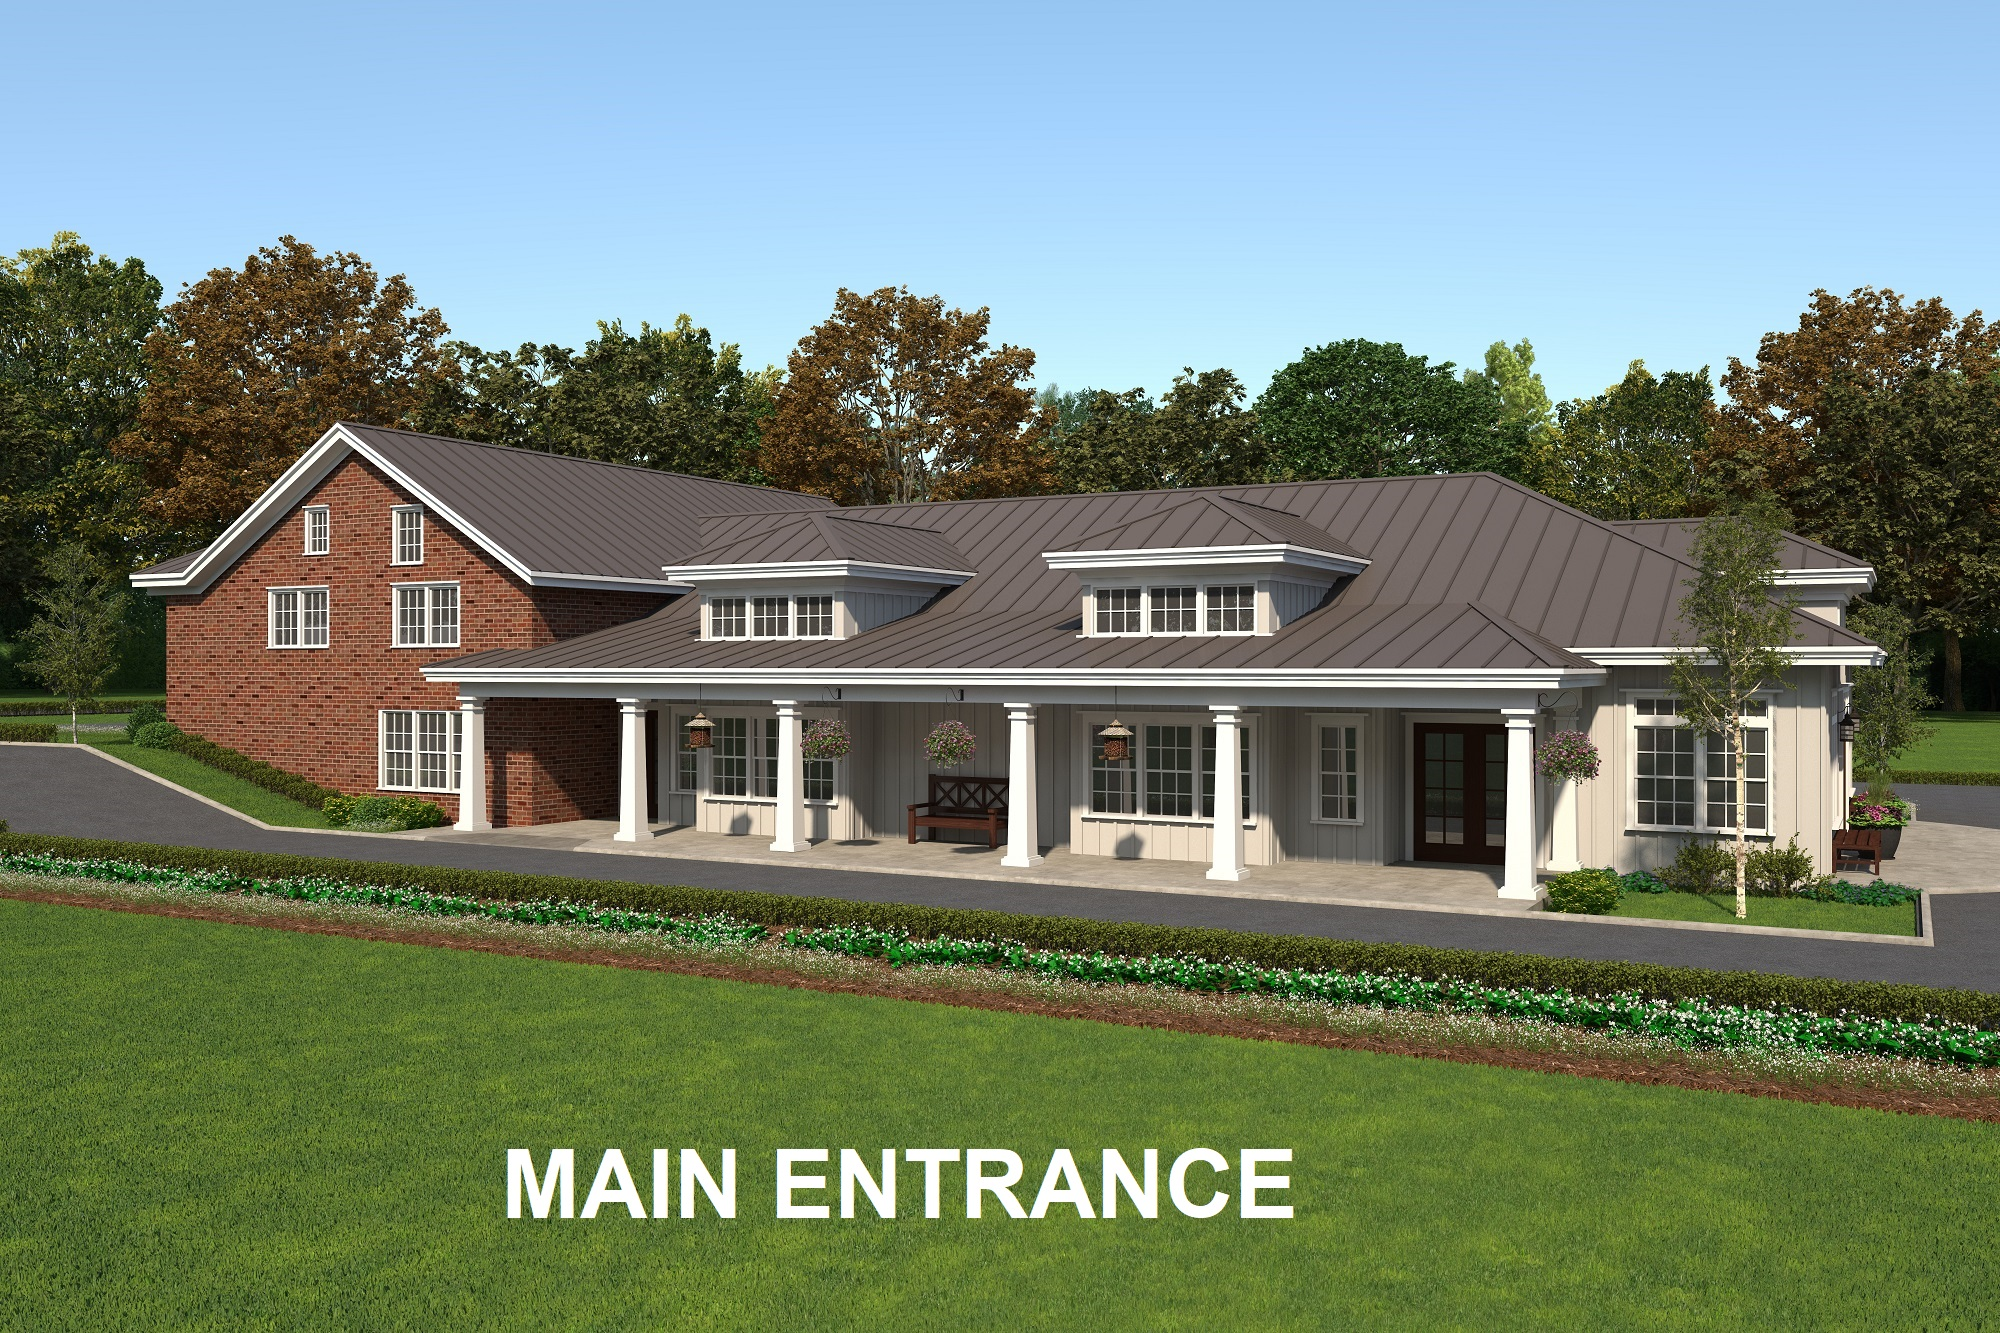 The 5- bed hospice residence, which will be located adjacent to CHPC administrative offices in Lakewood, will serve an estimated 200 patients annually.